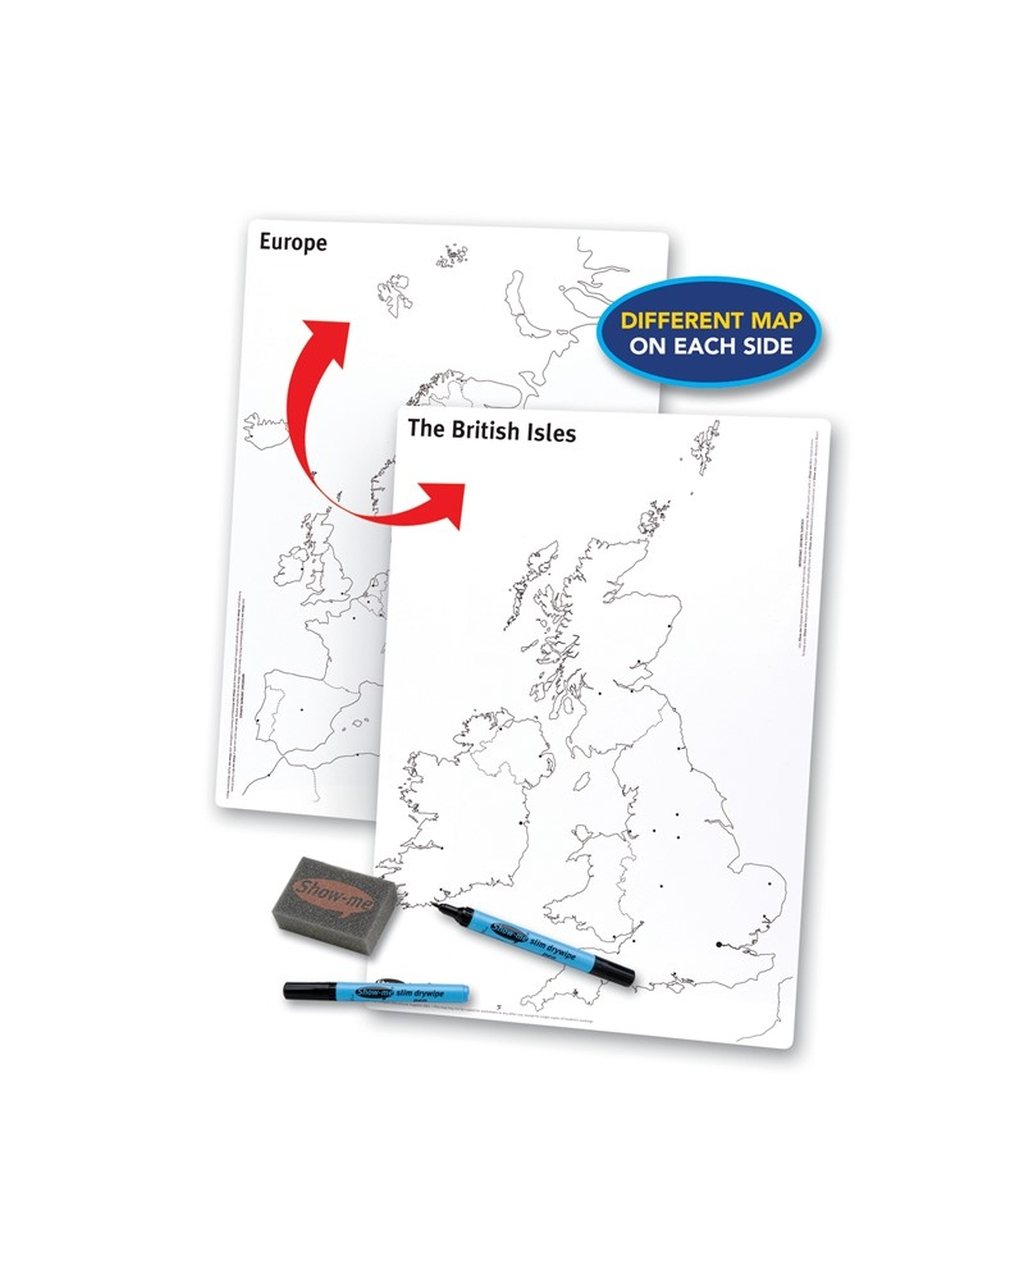 Show-me A3 UK/Europe Whiteboards